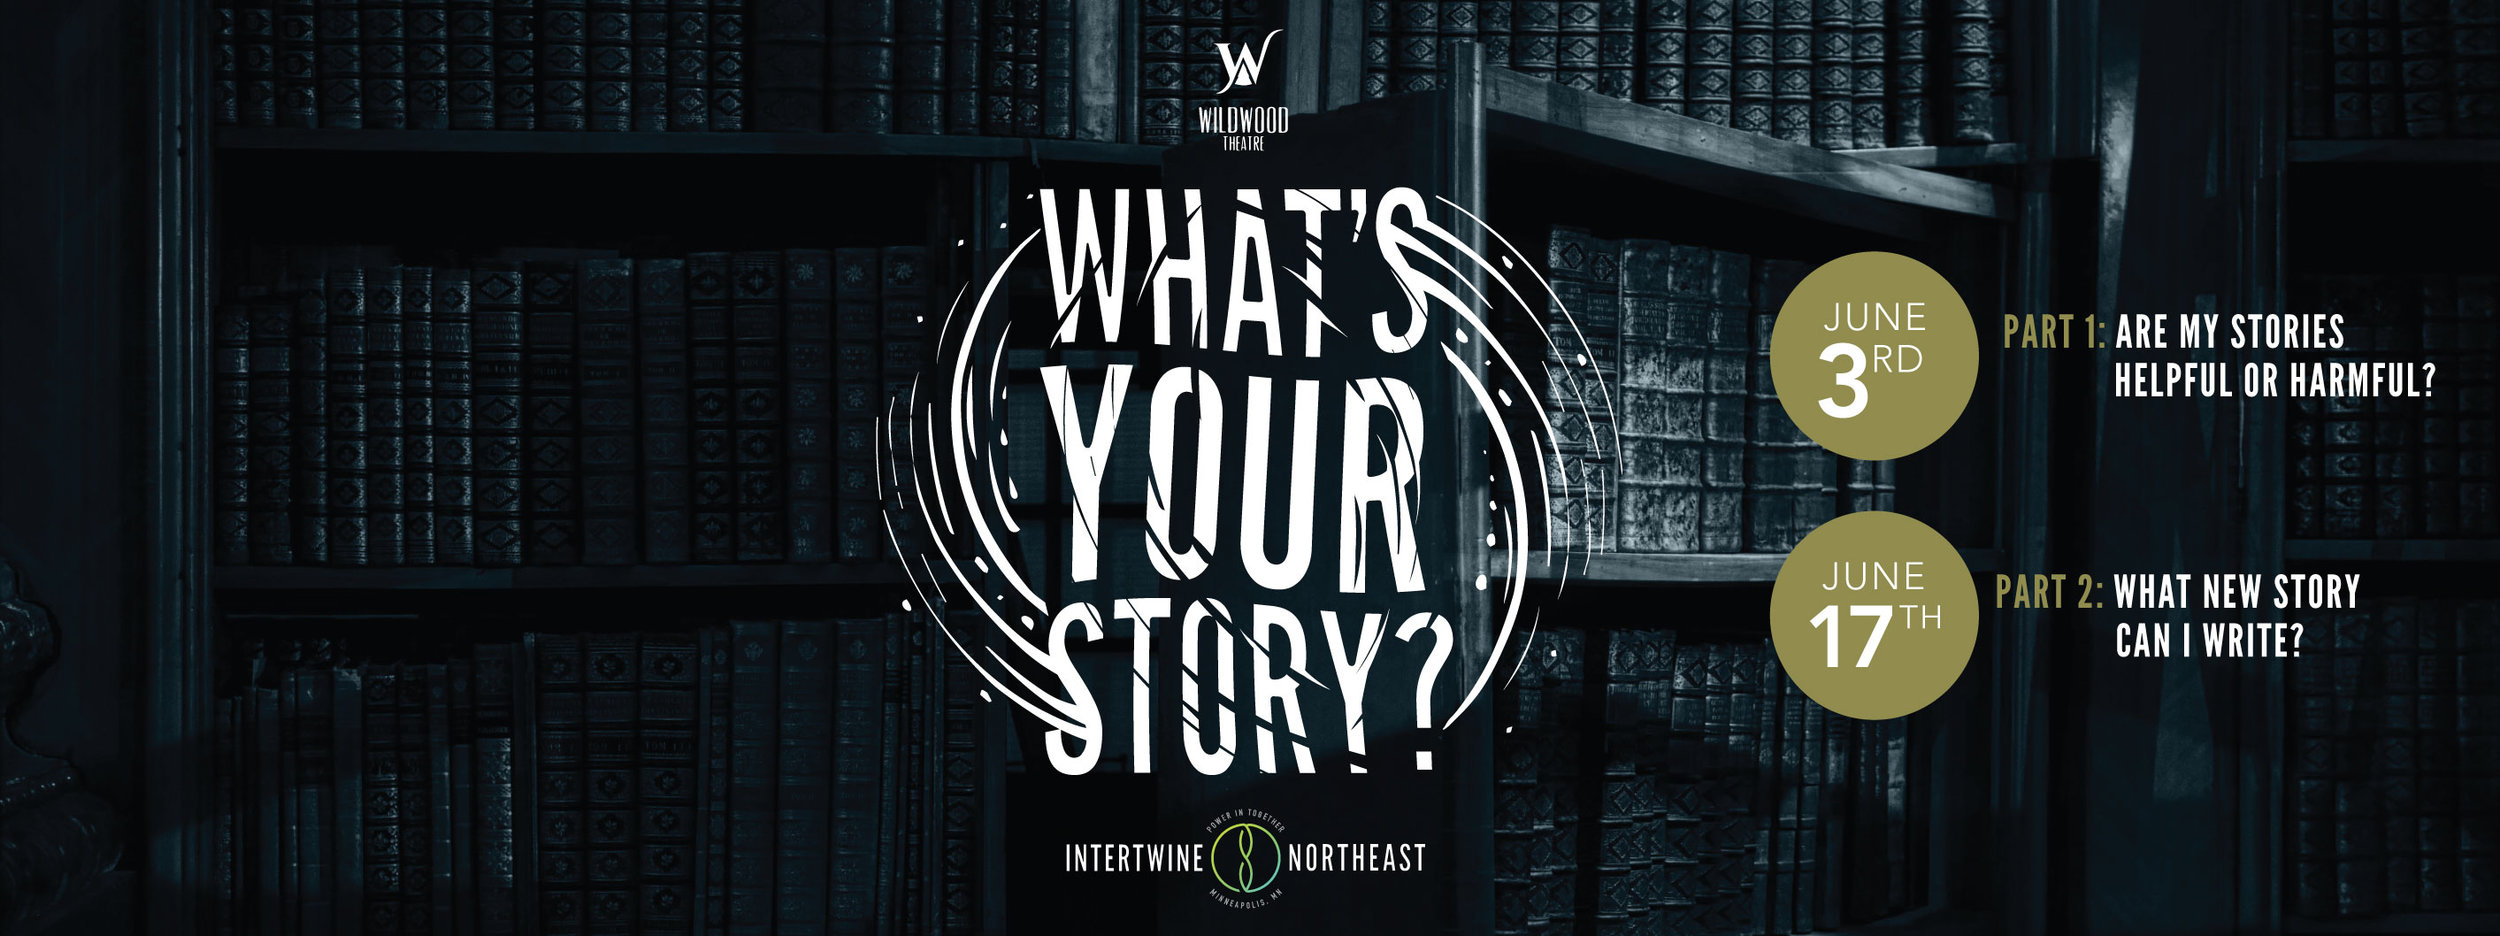 Whats-YourStory-v3-wide.jpg